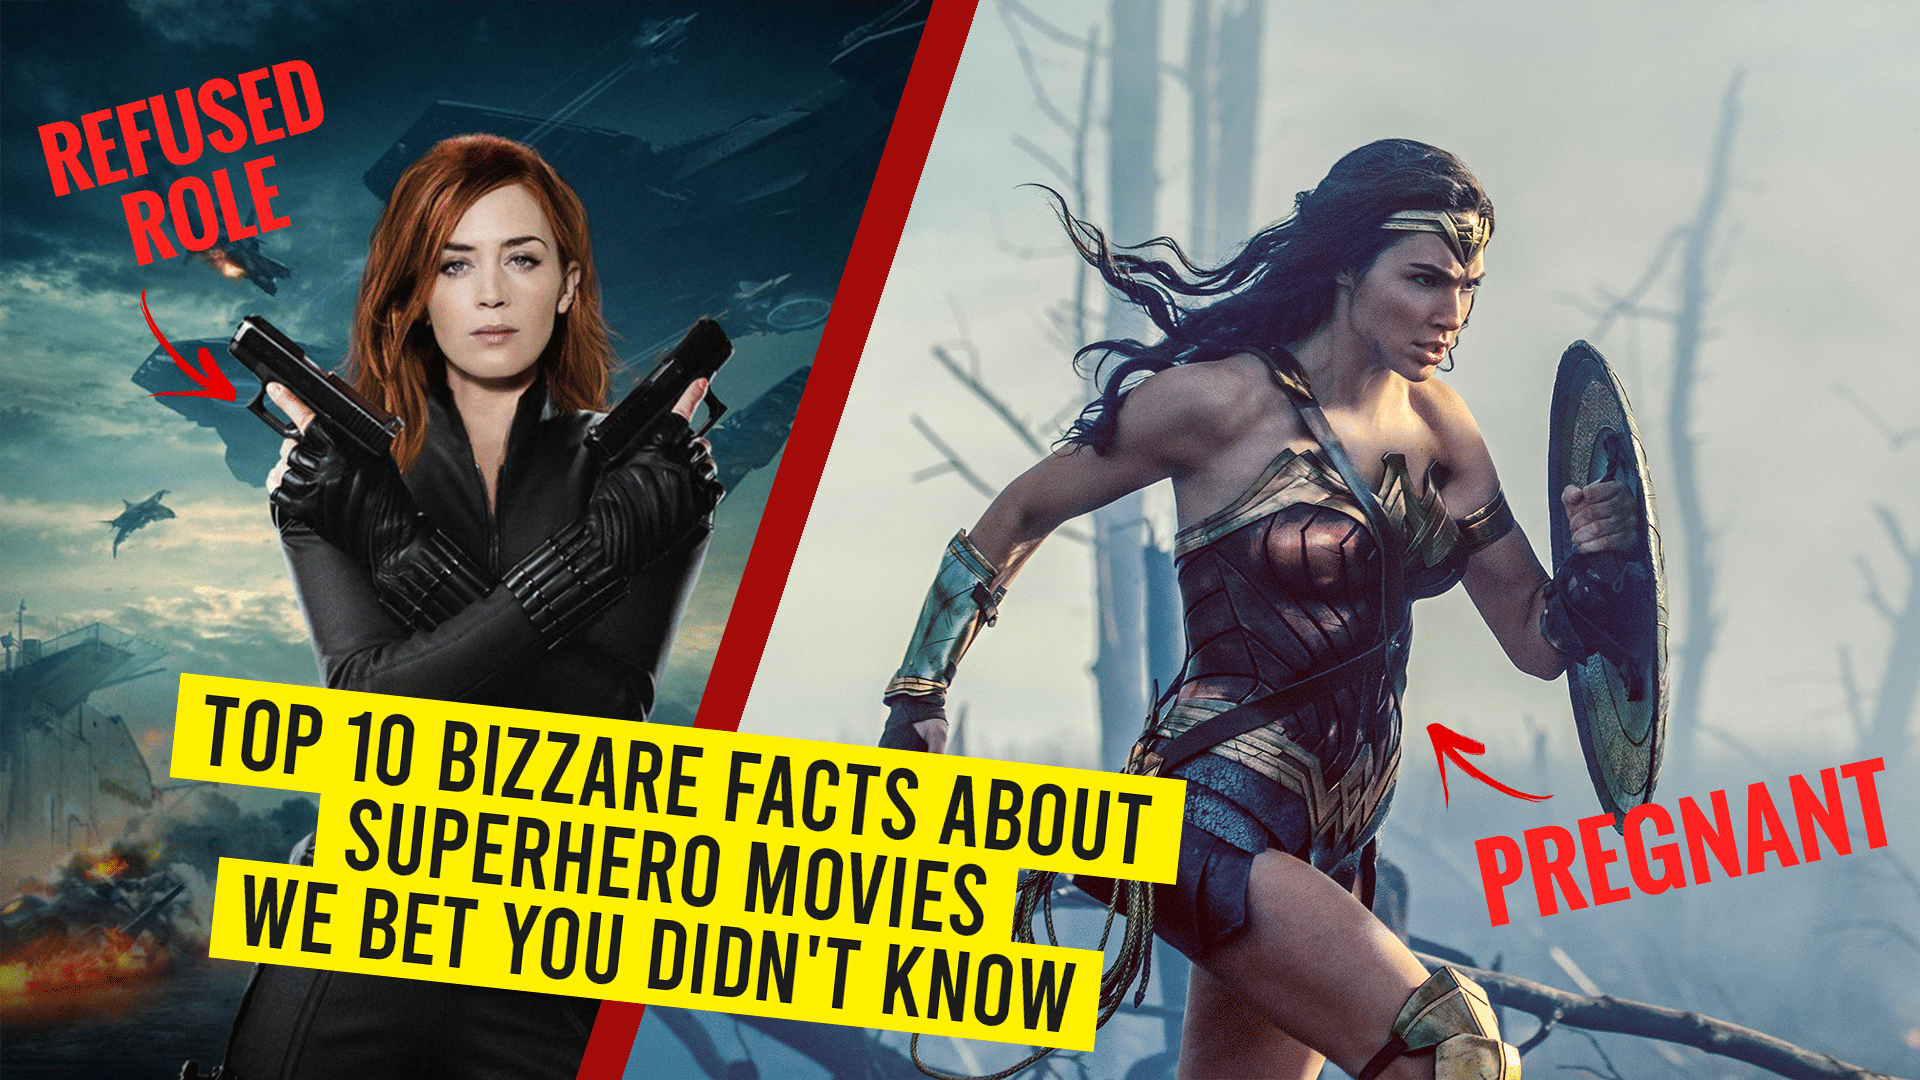 Facts About Superhero Movies